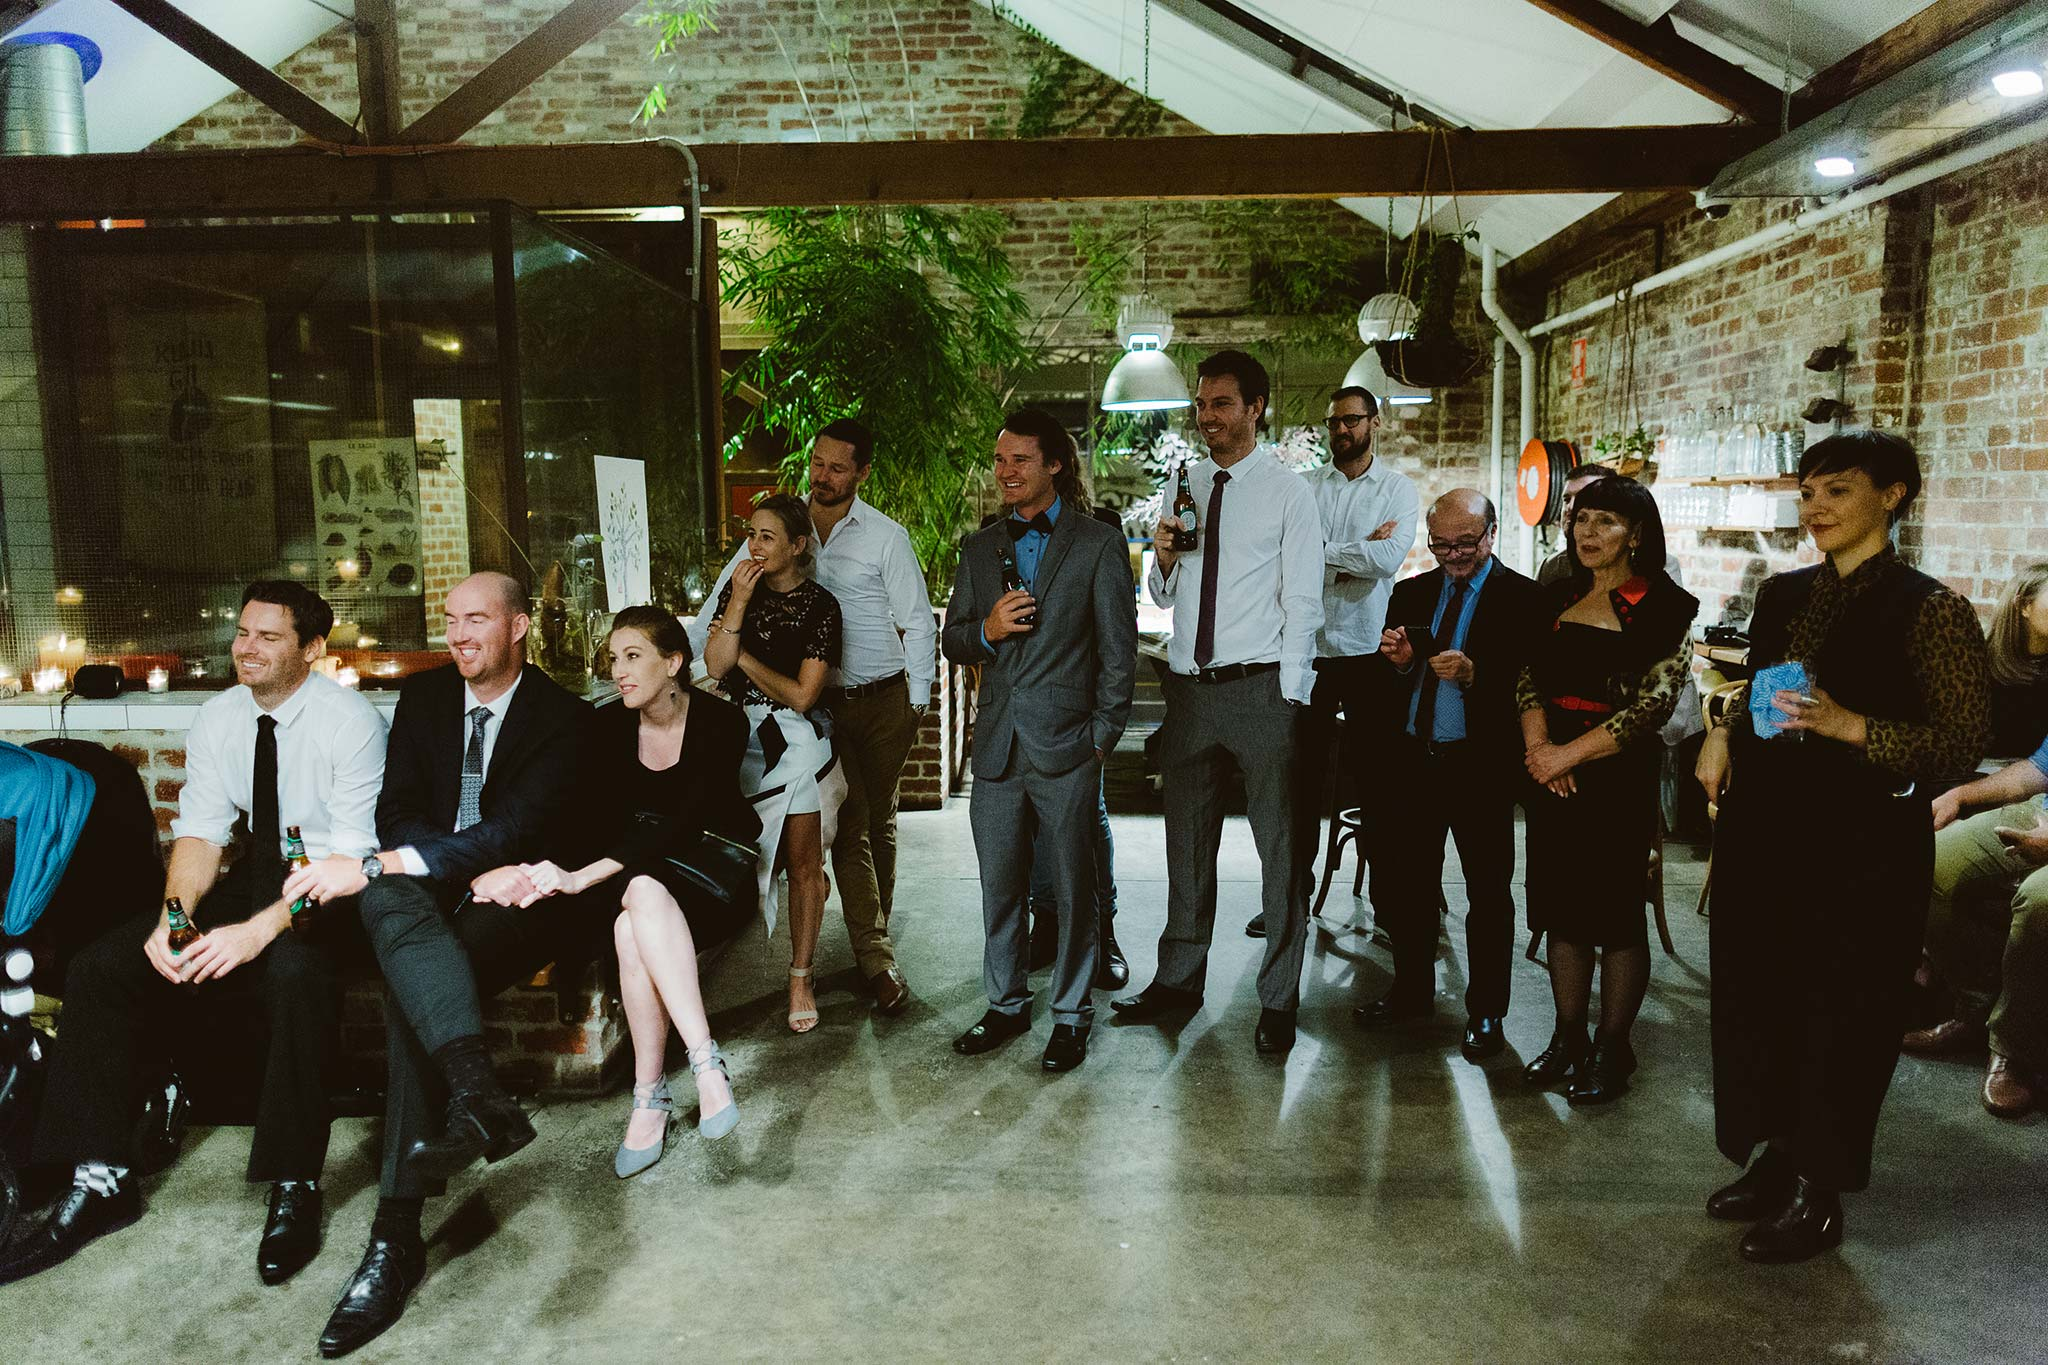 Melbourne-North-Carlton-East-Elevation-Surprise-Winter-warehouse-Wedding-photographer-guests